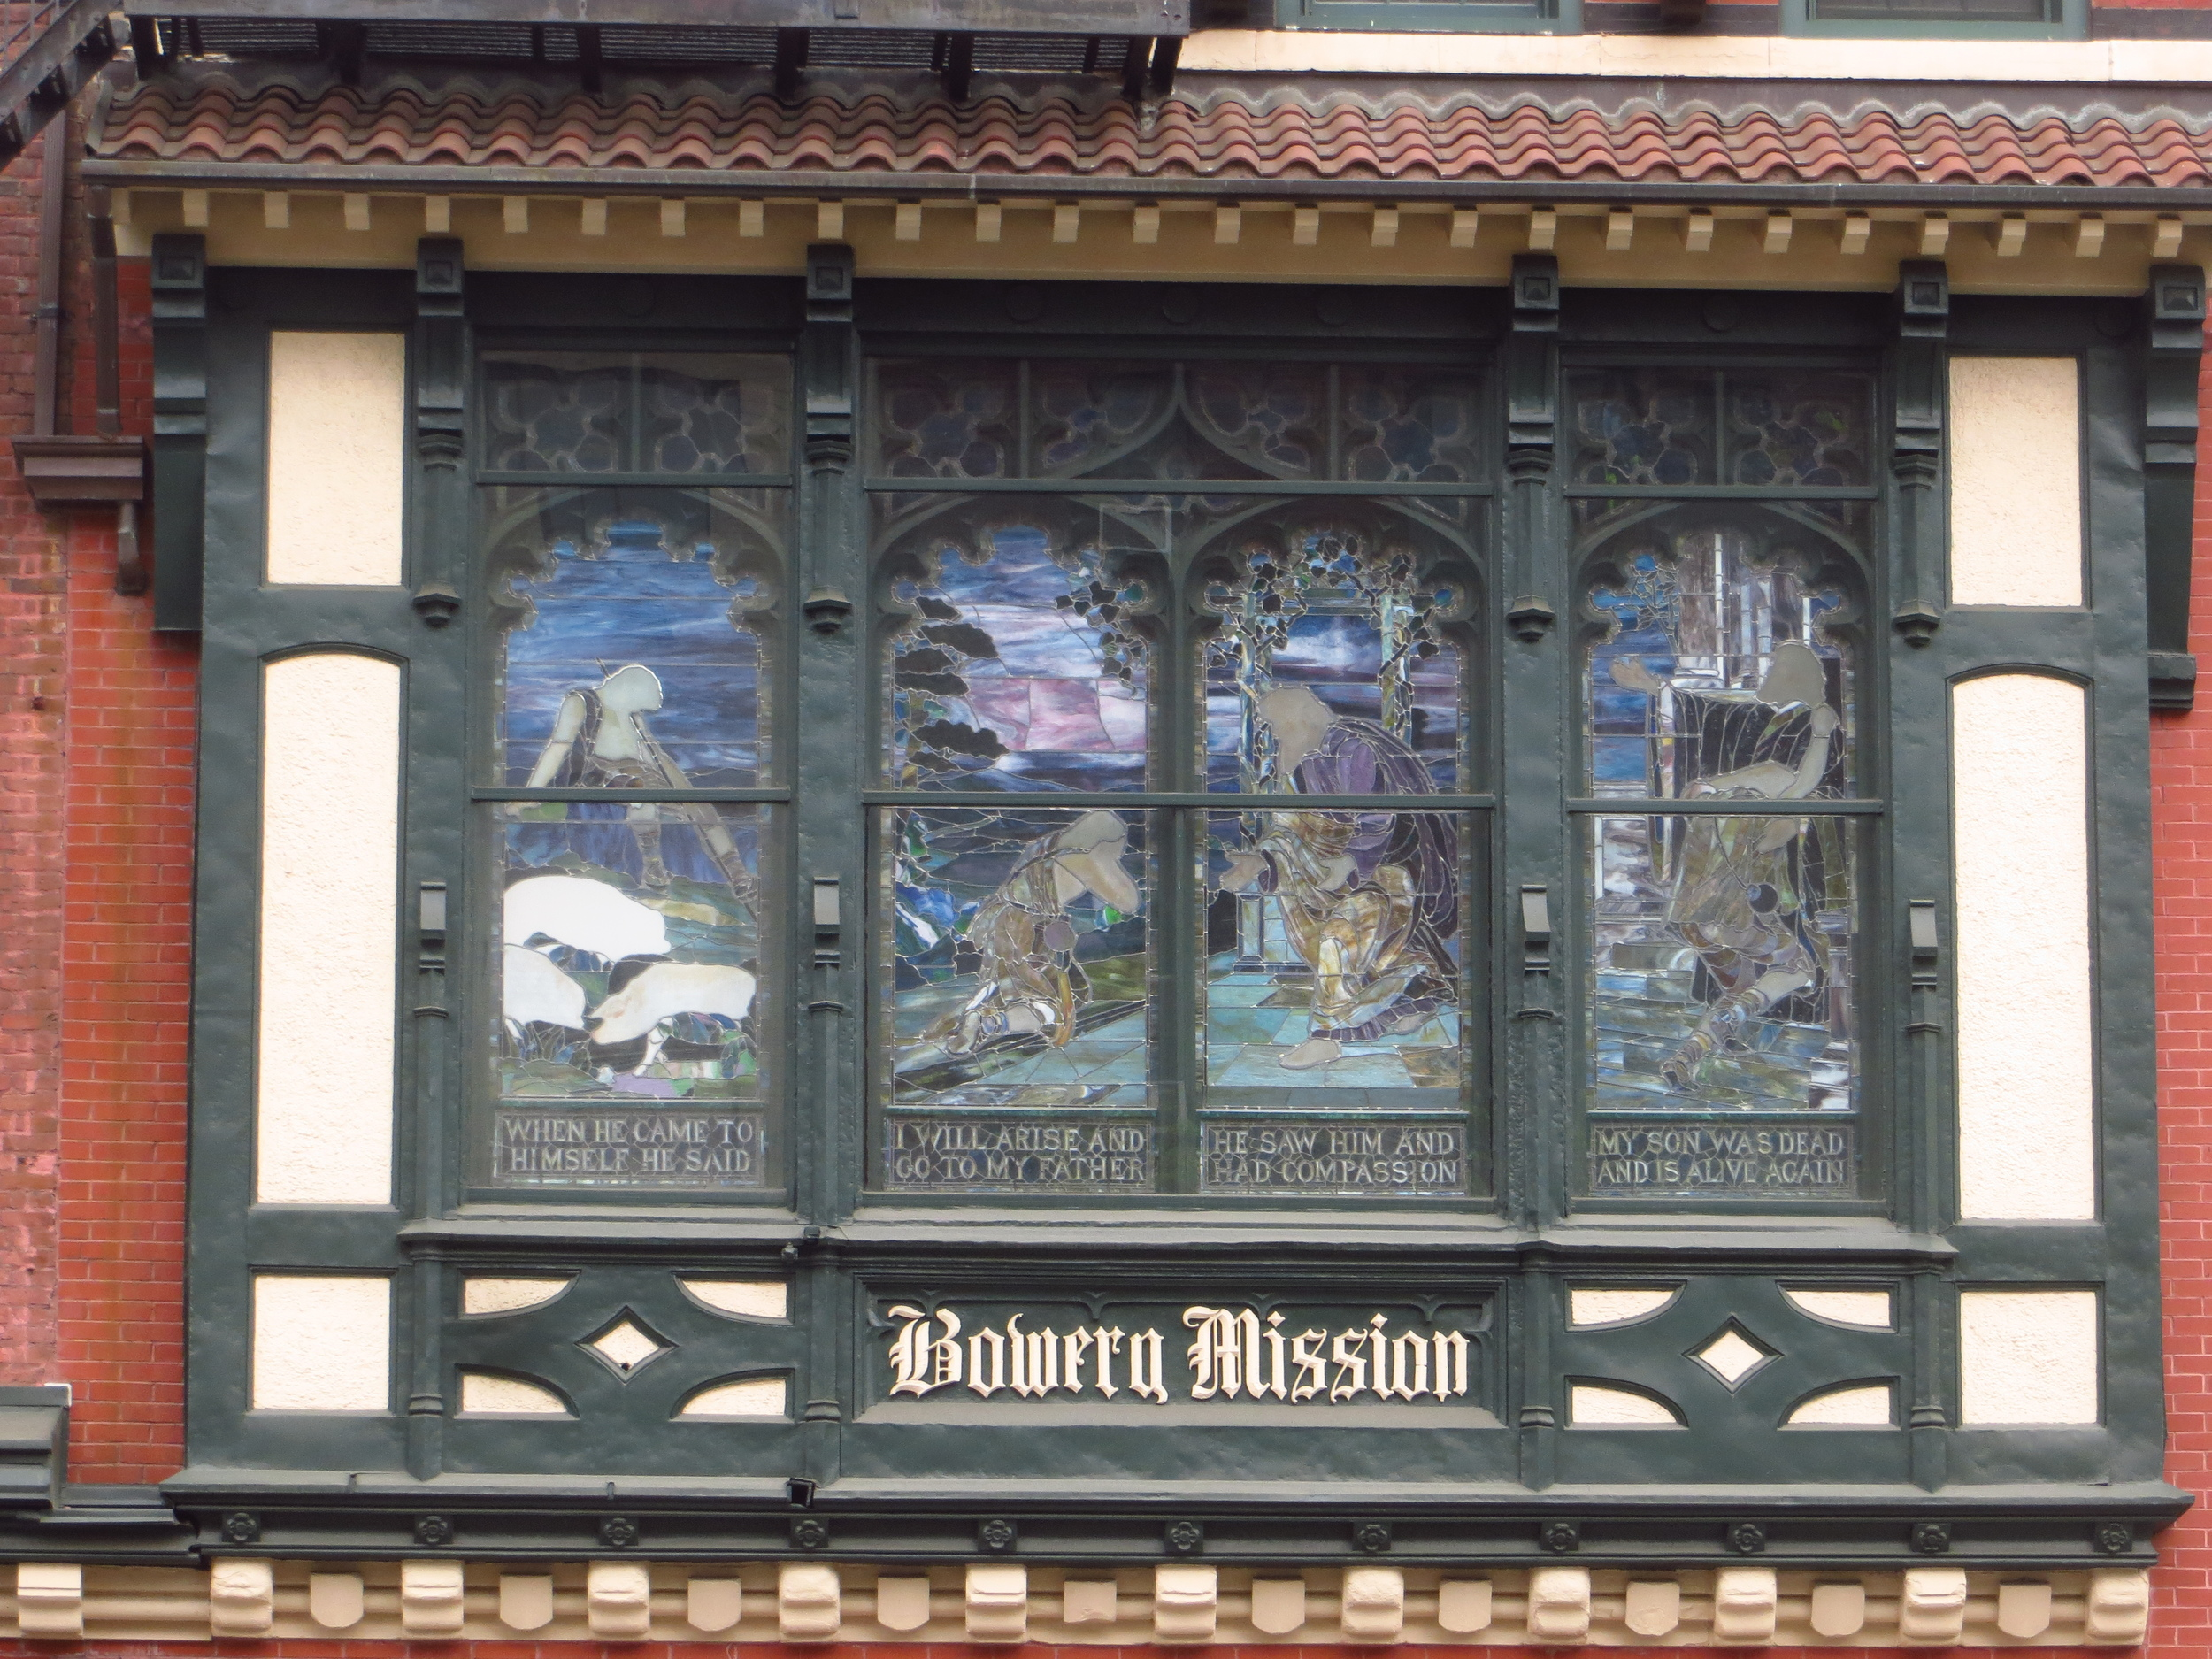 Bowery Mission window